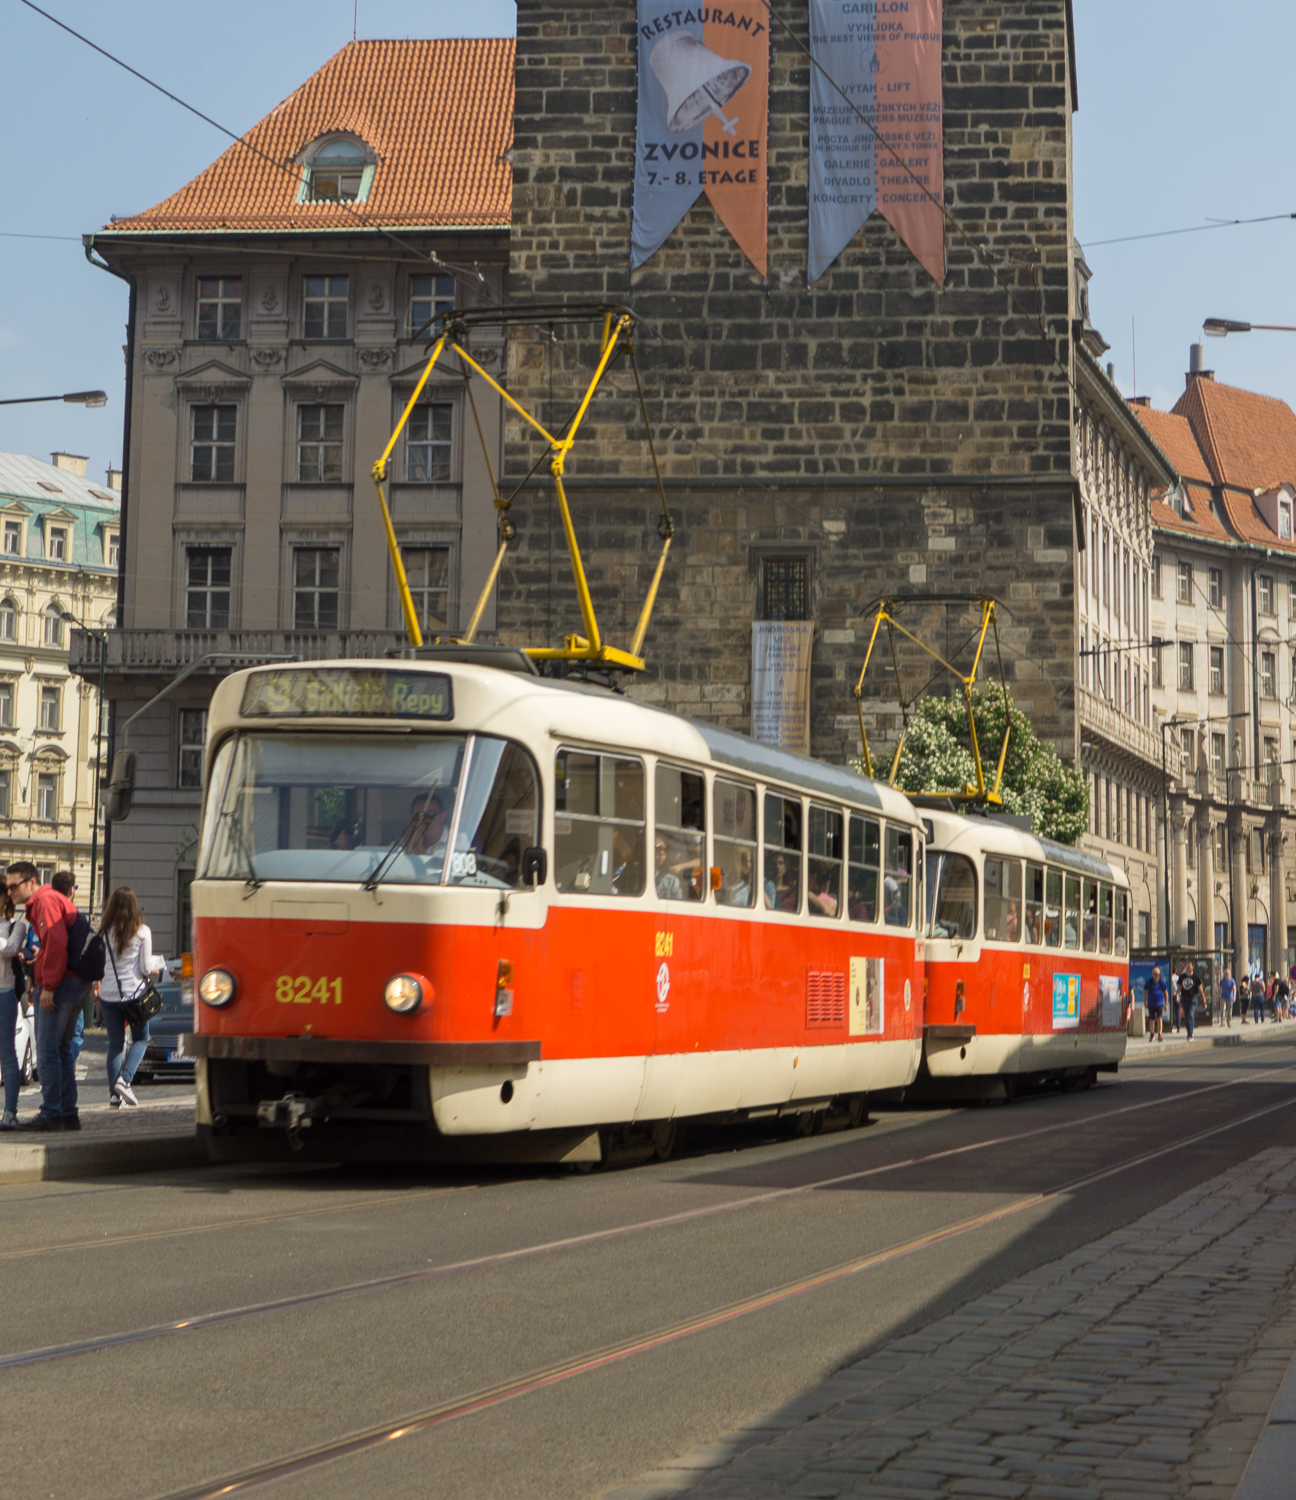 The best trams in the whole world. Hopefully I can get one in focus one day.